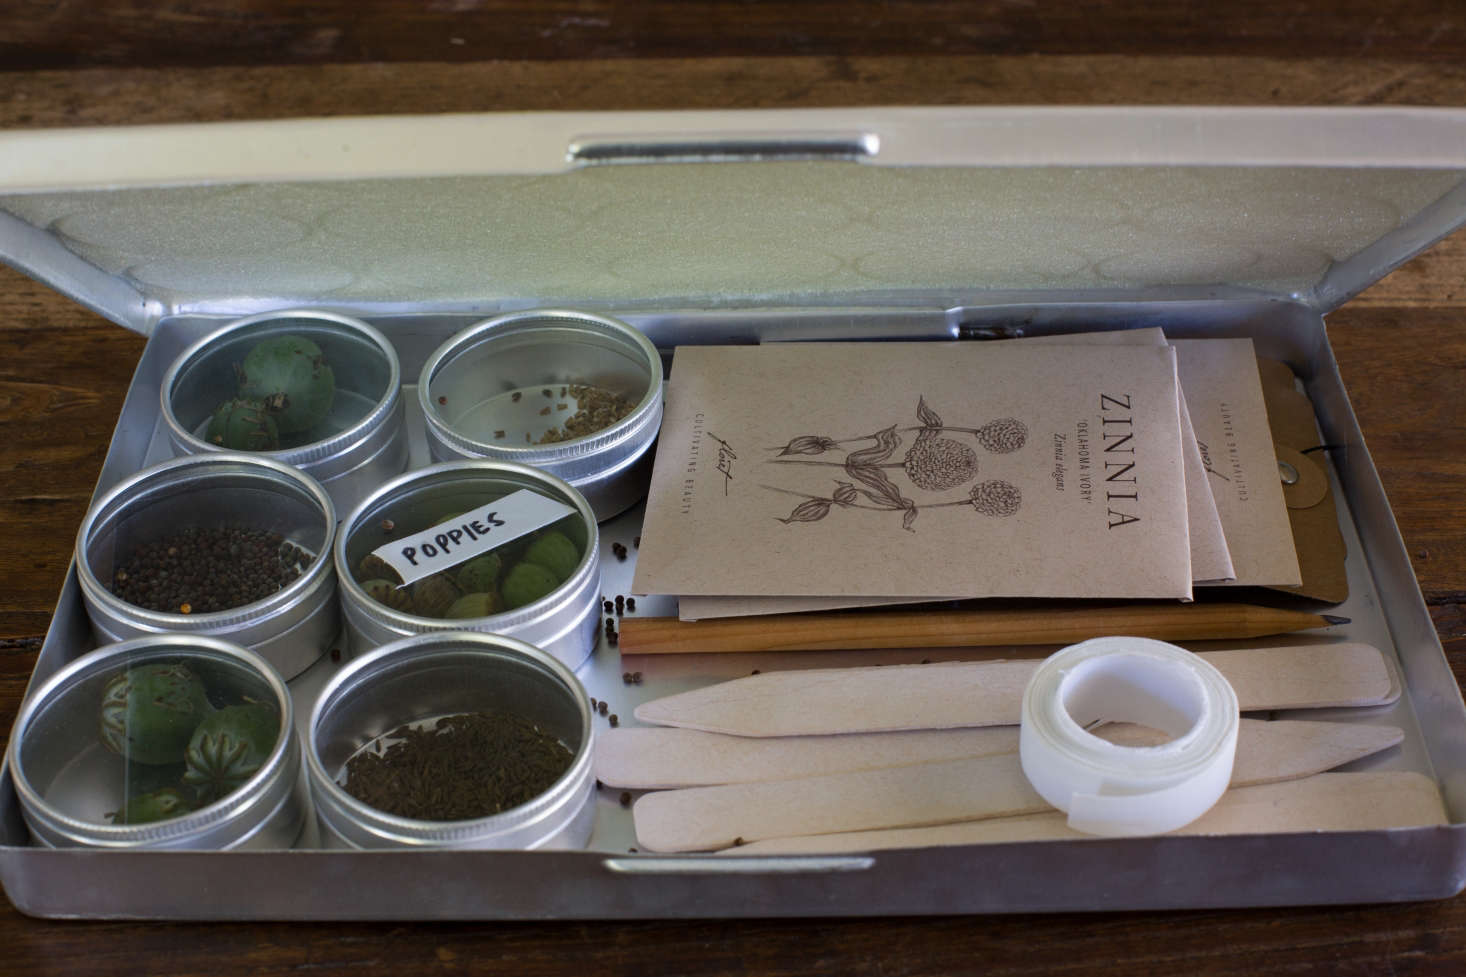 See tips for assembling your own seed-saving supplies in Seed Savers: Essentials for a DIY Kit. Photograph by Mimi Giboin.